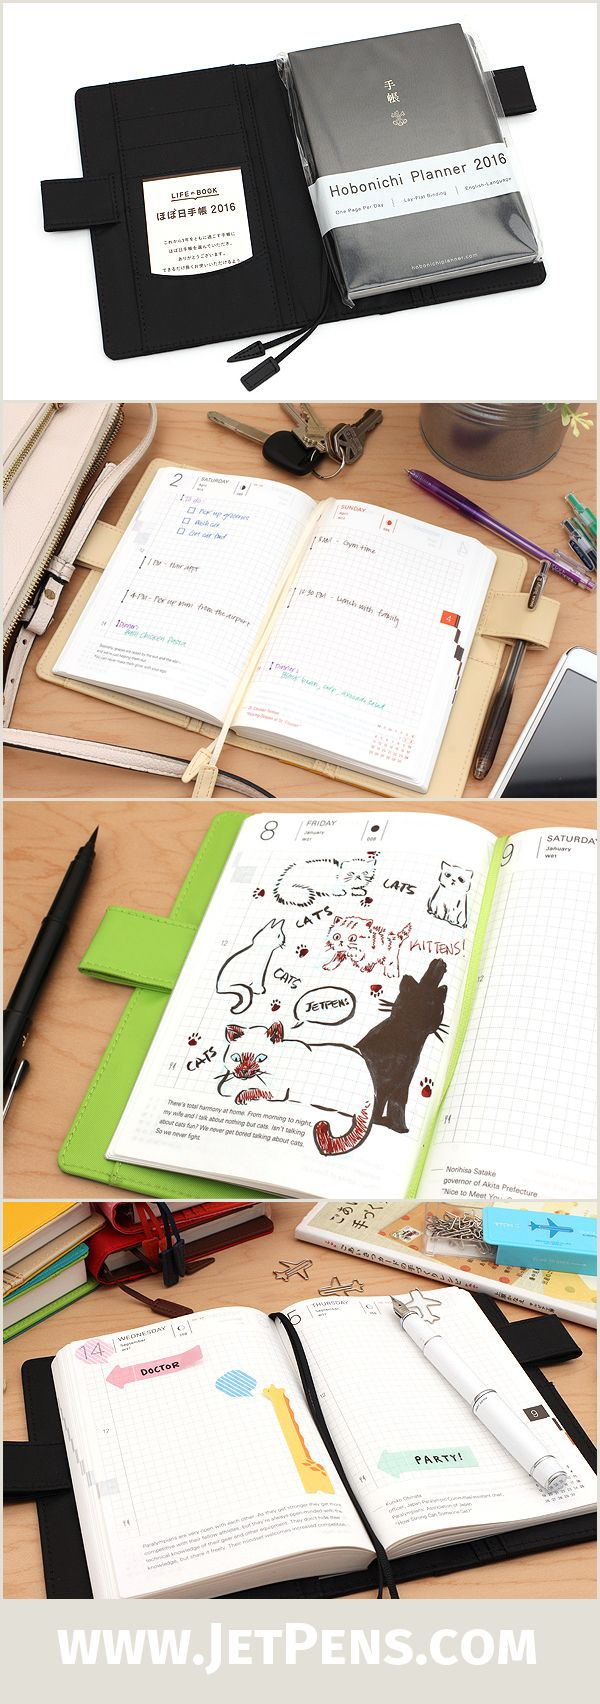 The 2016 Hobonichi Techo Planner is now available at JetPens for the first time ever! This thoughtfully designed pocket planner has a cult following in Japan, and is quickly gaining popularity around the world. We now have the highly anticipated English version of the Techo in stock, along with six colored cover options.